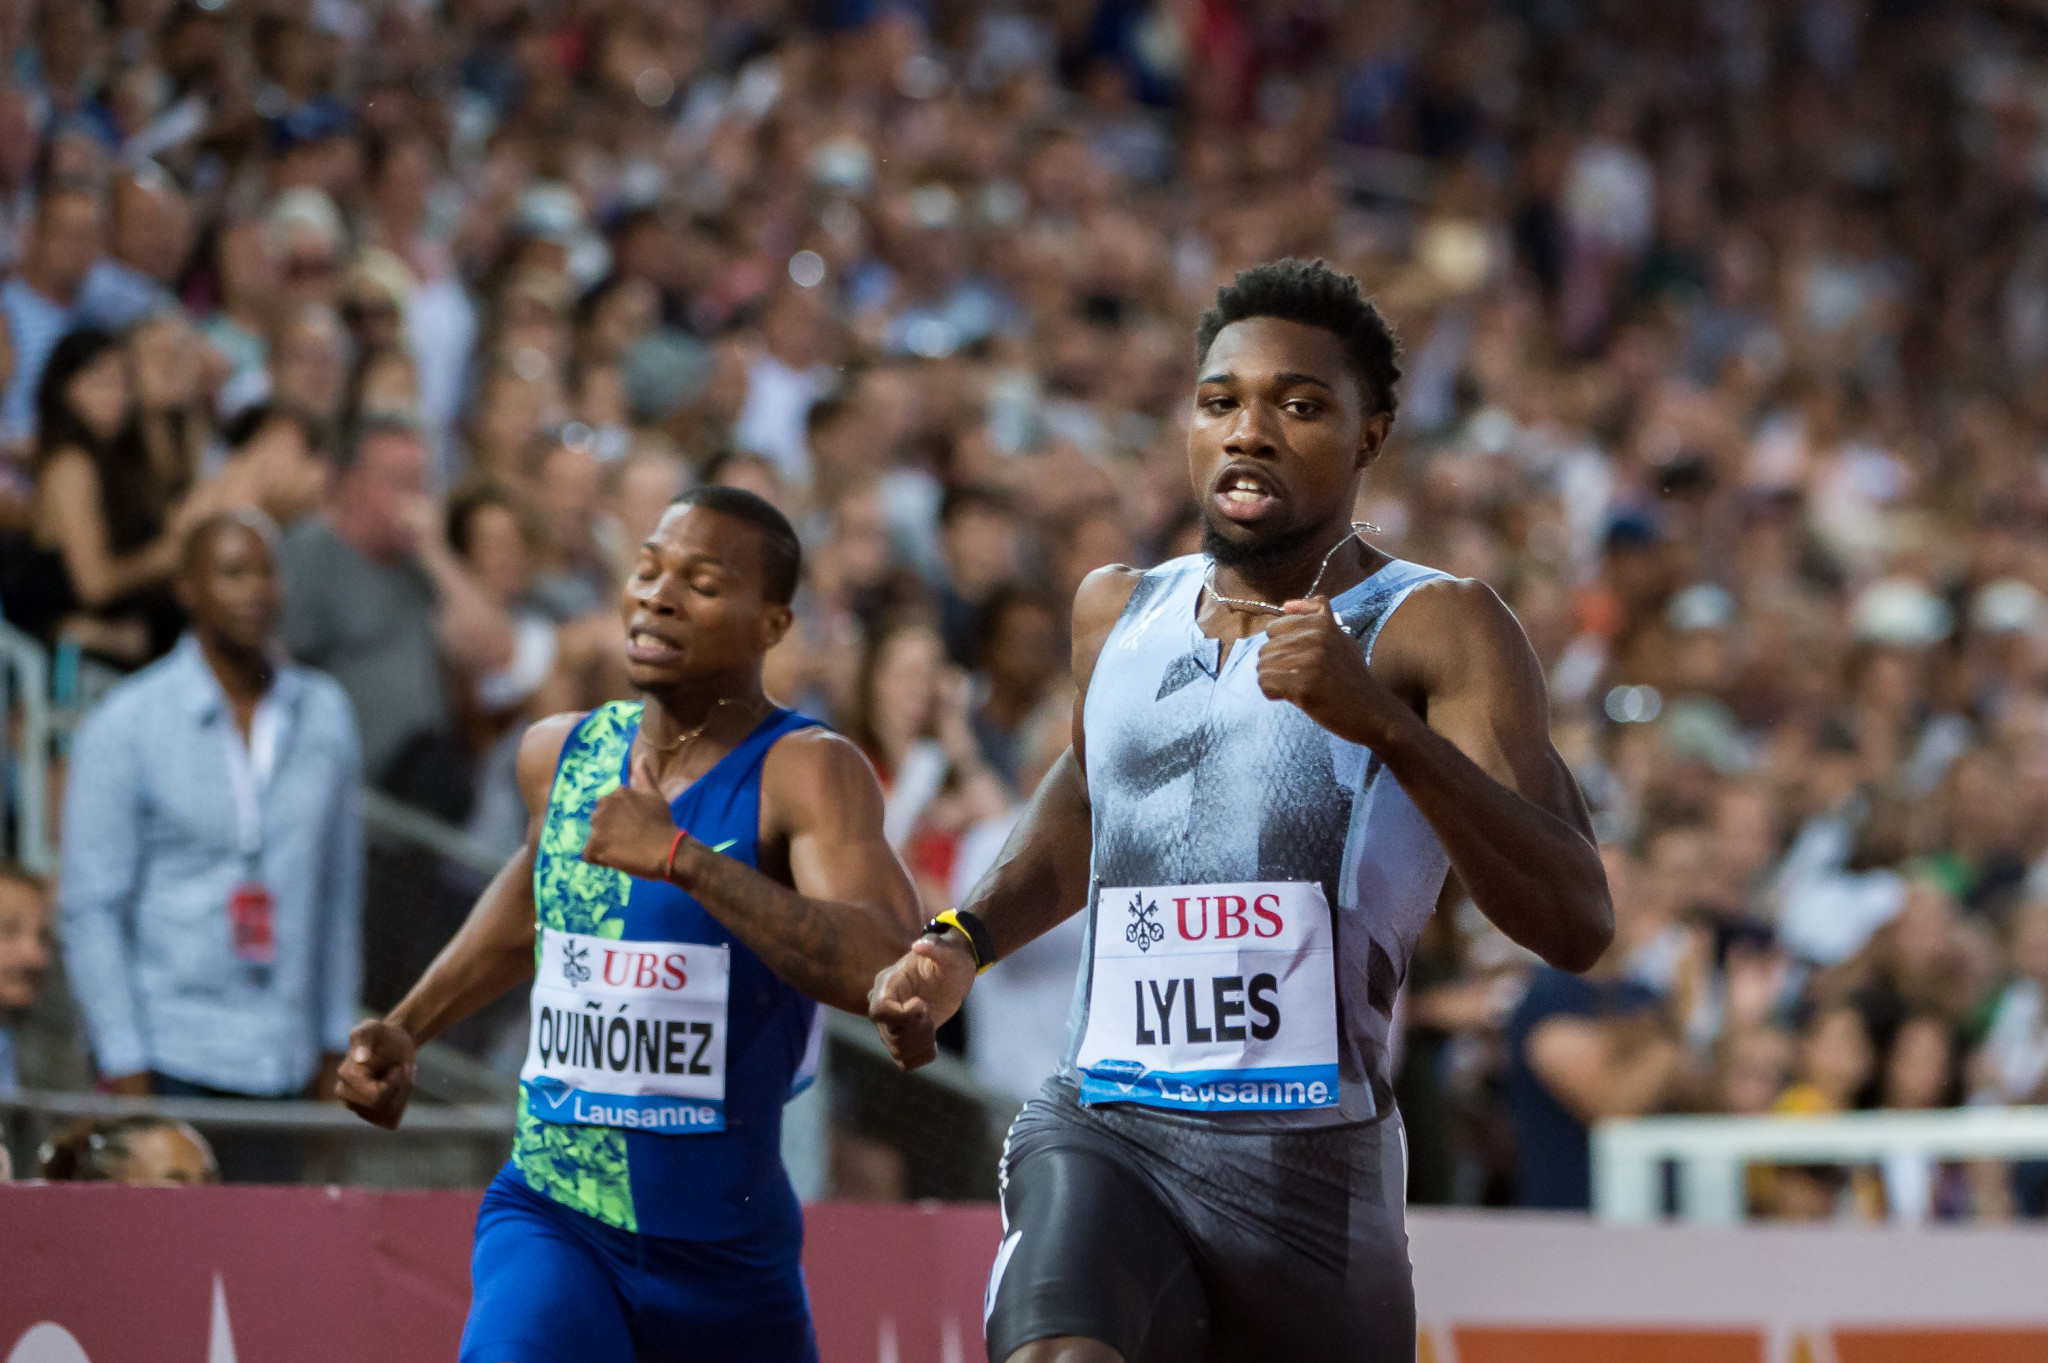 America's Noah Lyles wins the 200 metres at the Lausanne Diamond League meeting in 19.50sec - the fourth fastest in history ©Getty Images